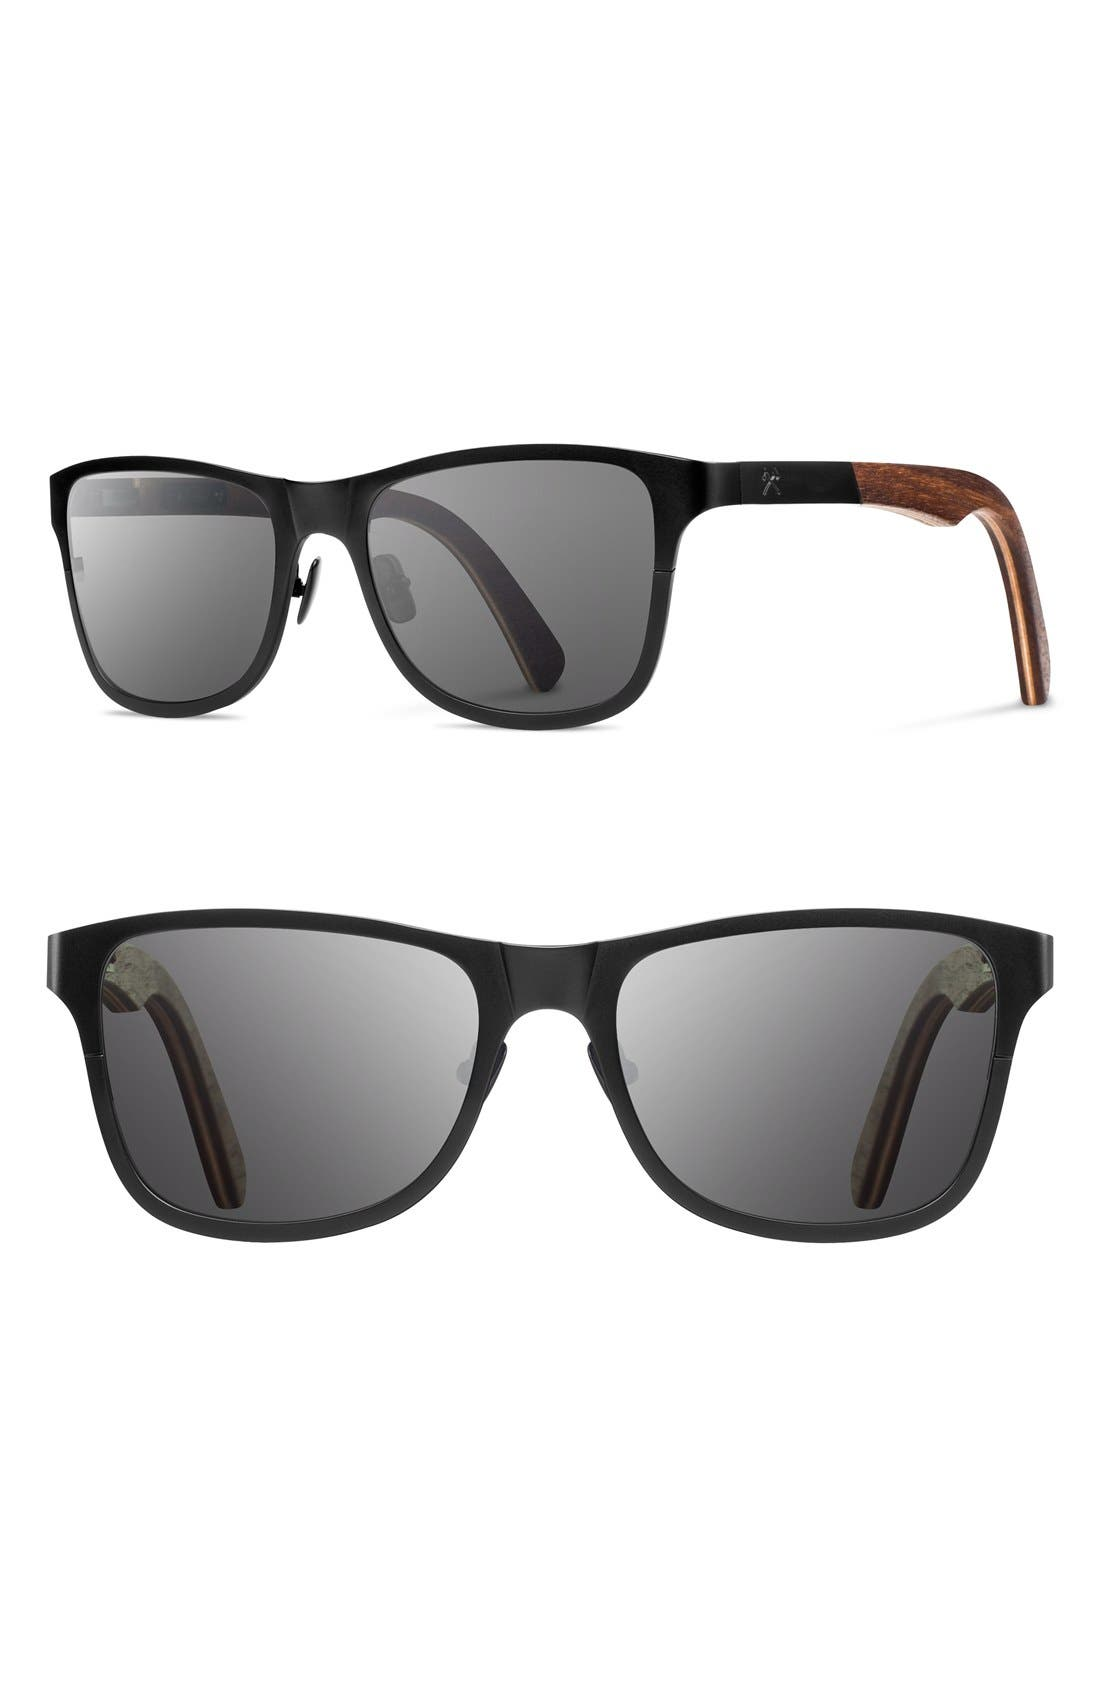 SHWOOD Canby 54mm Titanium & Wood Sunglasses